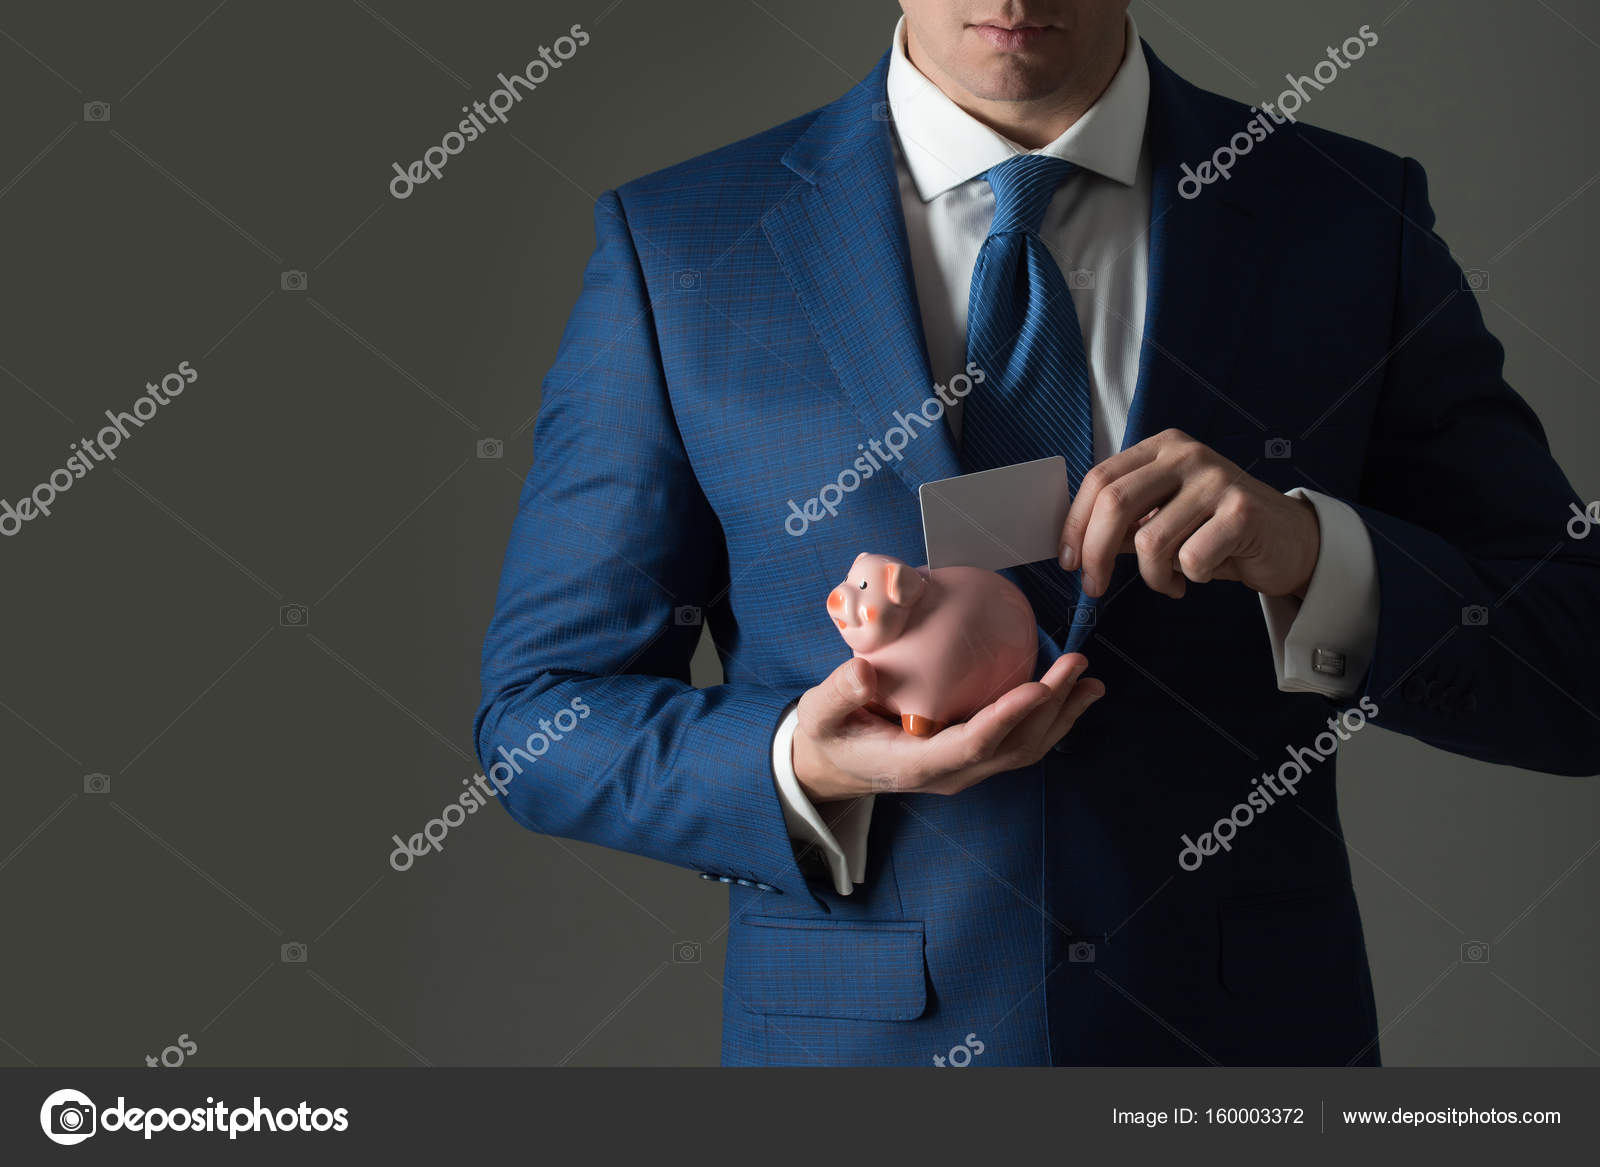 Stylish Formal Blue Suit And Tie. Male Hands Putting Blank Business Card In  Piggy Bank For Saving On Grey Background. Banking, Money, Loan, Moneybox,  ...